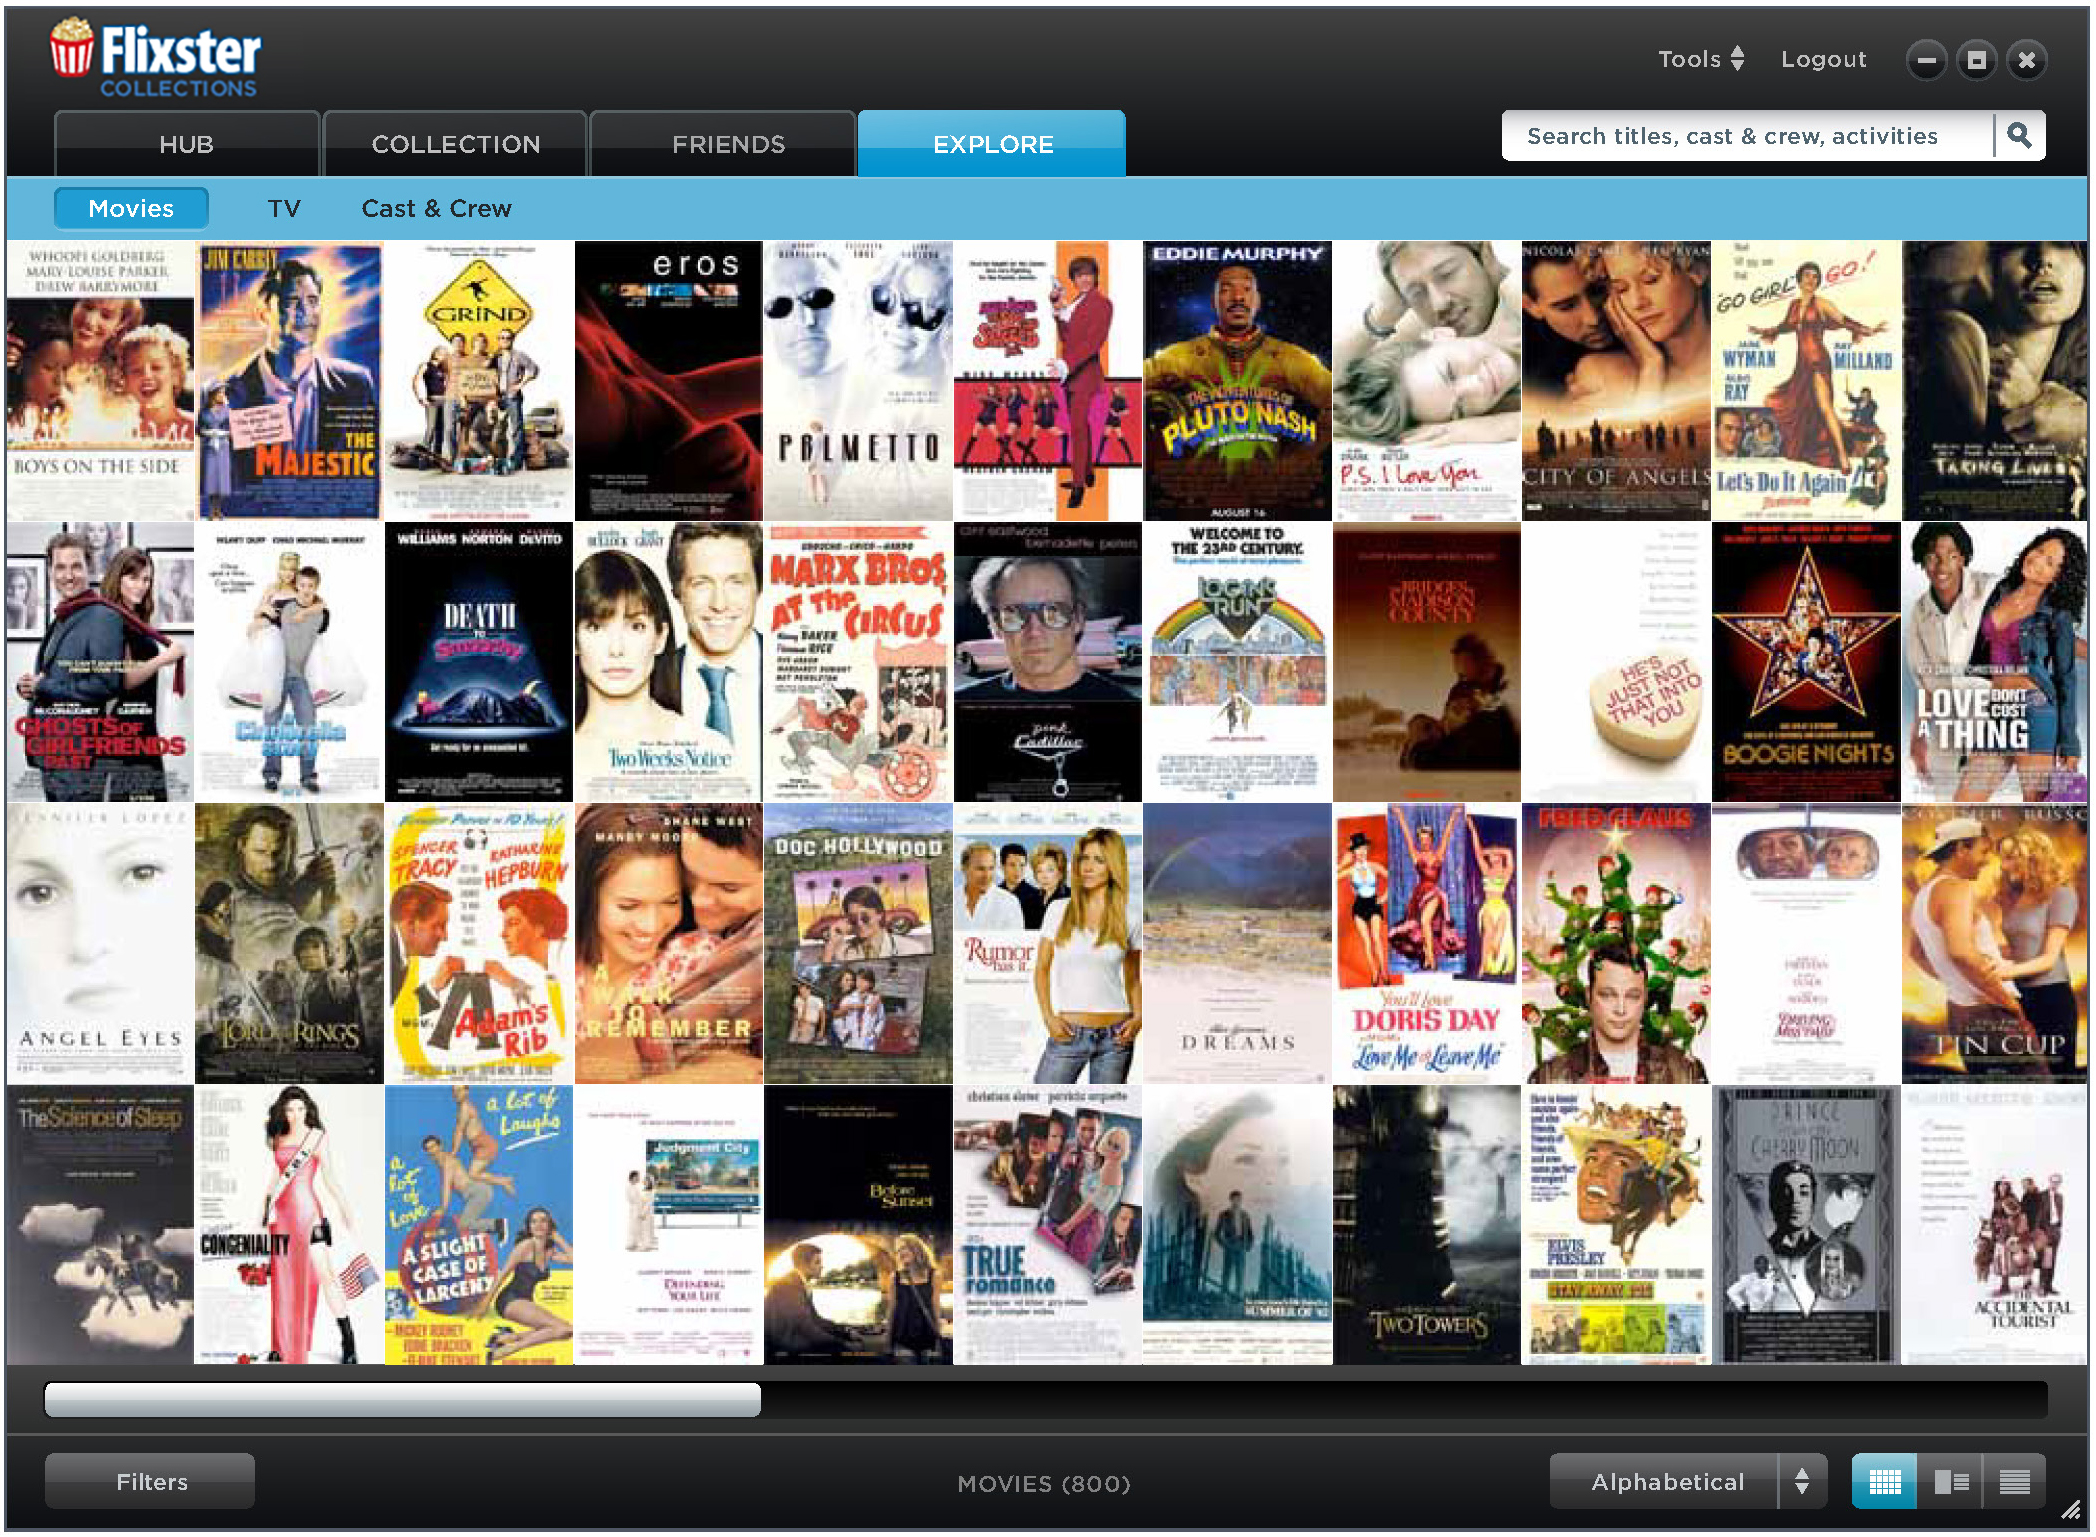 Explore entertainment personalized for you